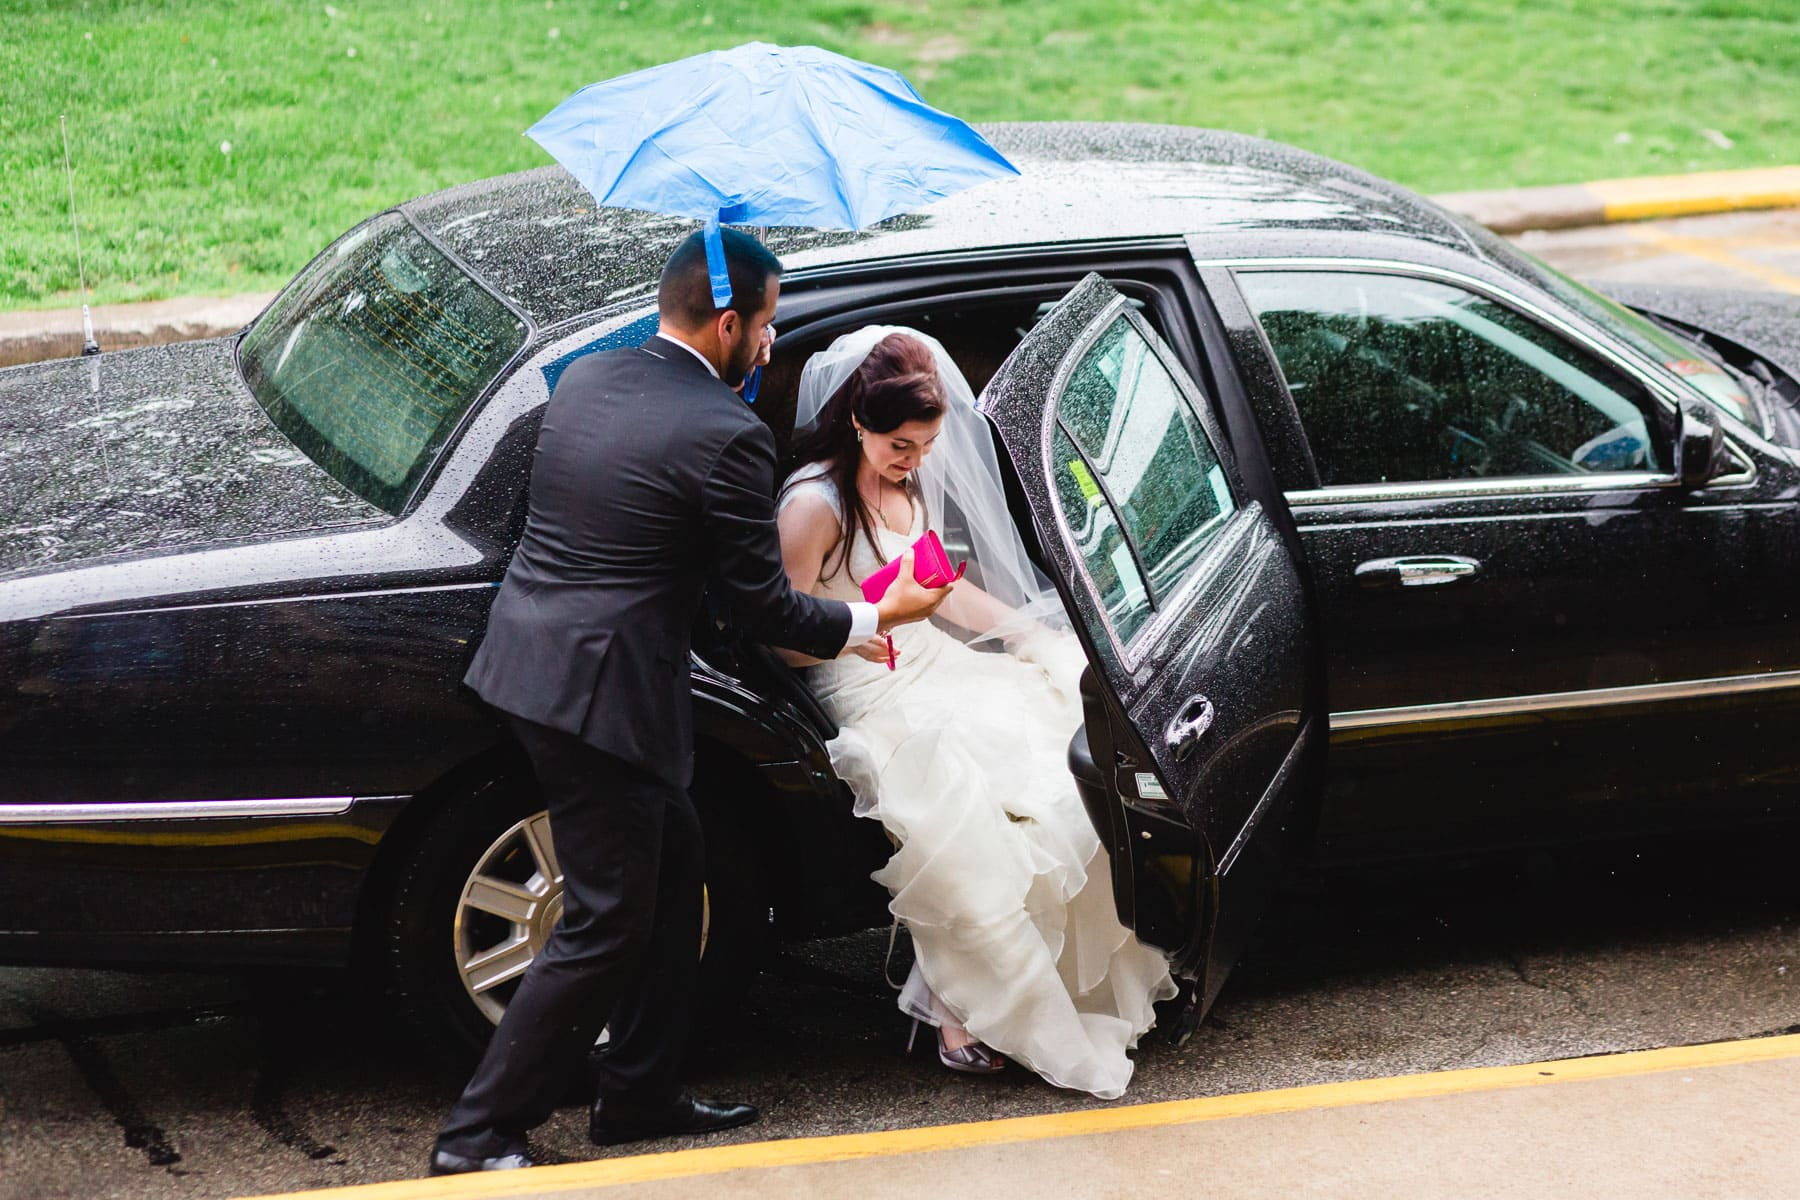 The bride is helped out of the limo by a friend with a tiny umbrella in this Hart House wedding photo.